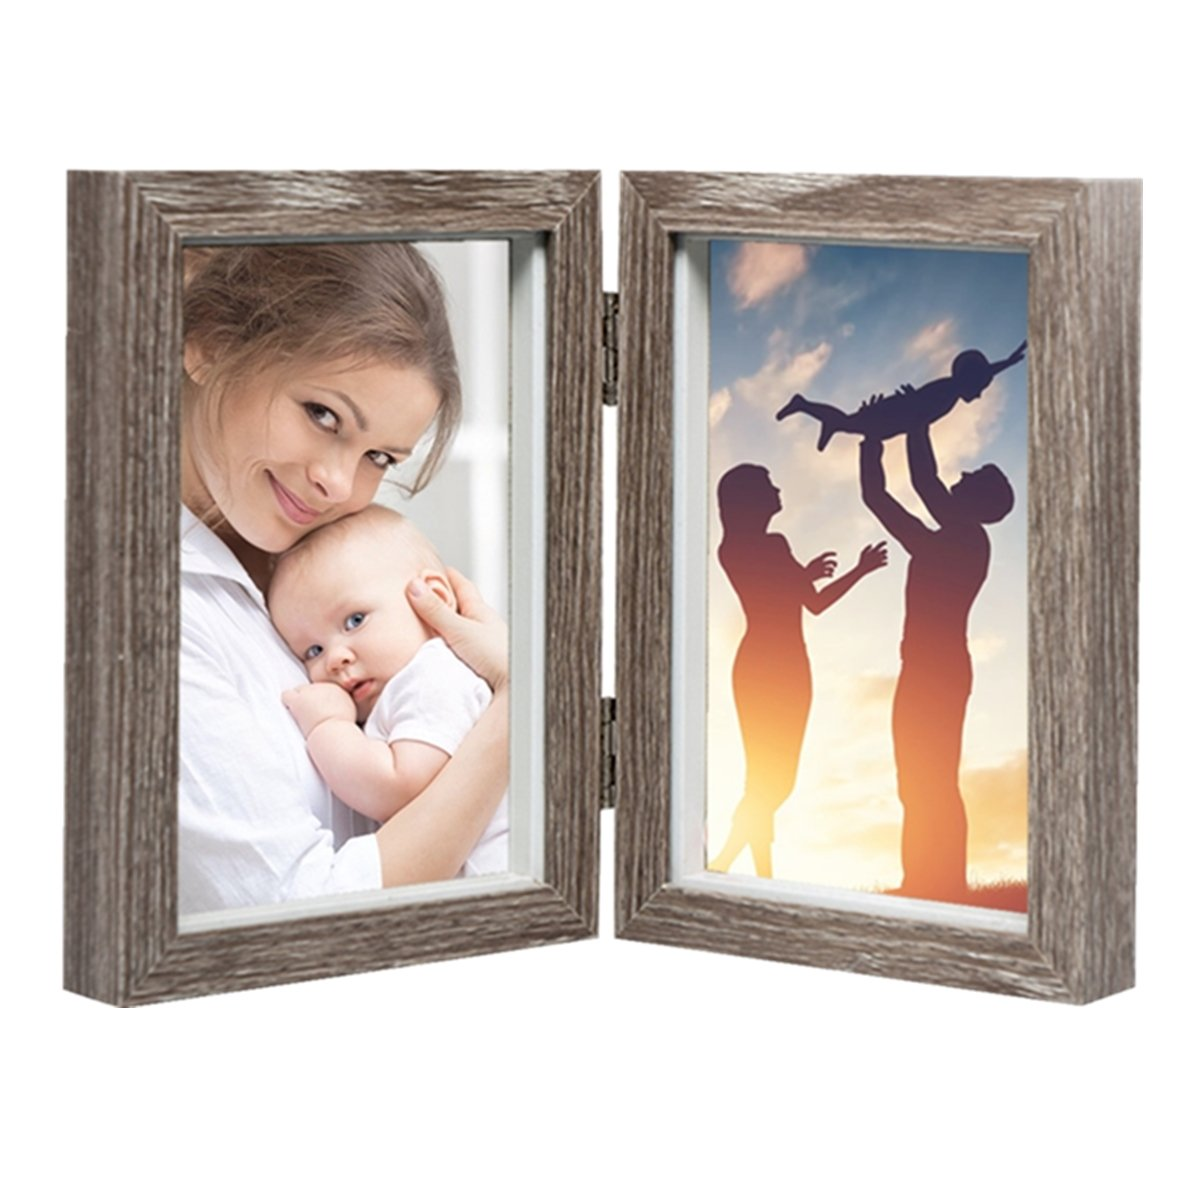 CECIINION Hinged Double Picture Frame, Wood Photo Frames (For 4x6 inch photos, Darker wood color)